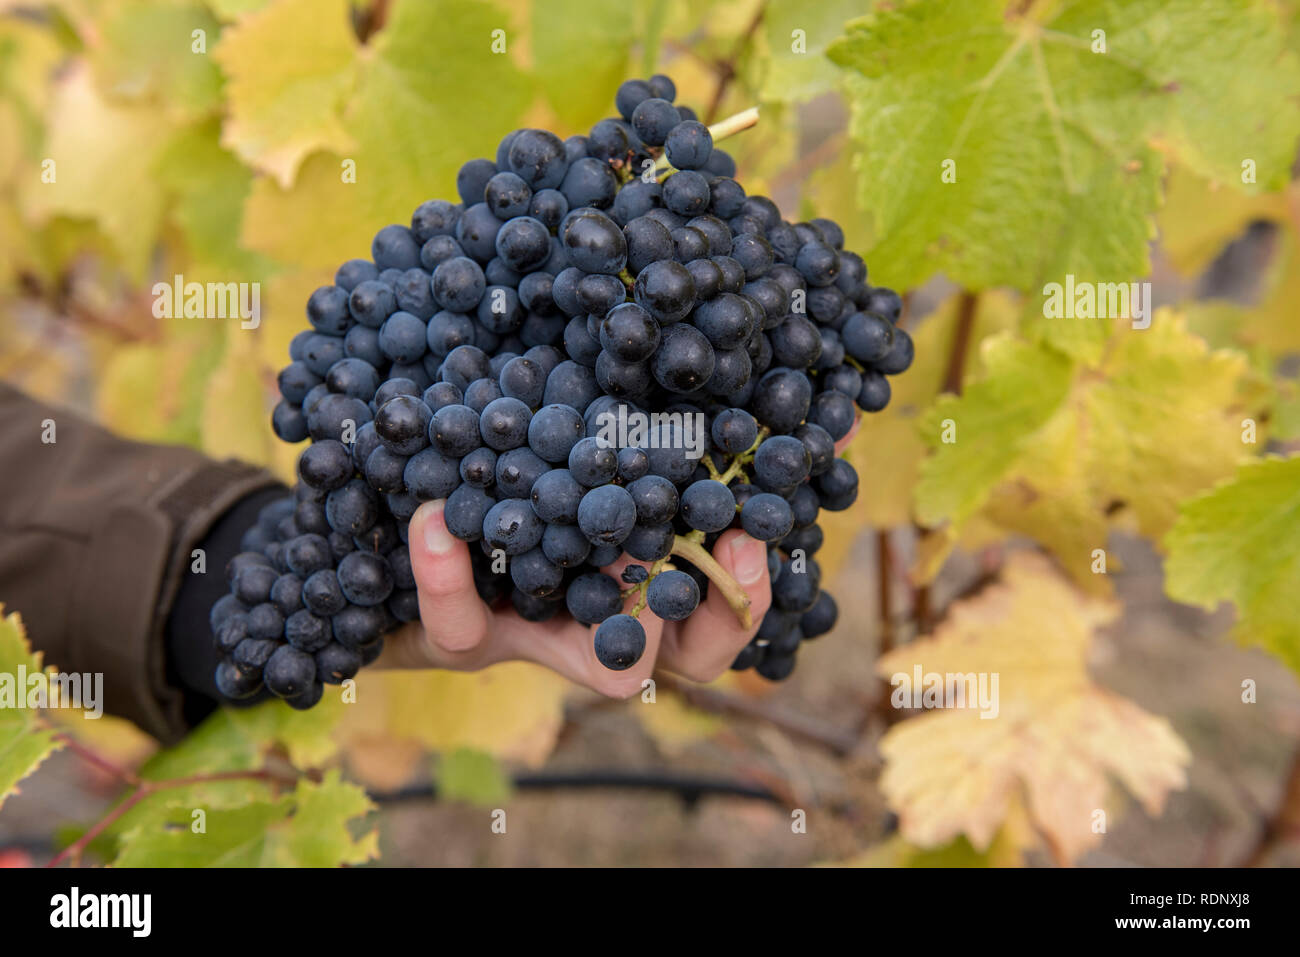 Harvesting ripe bunches of grapes in a vineyard in Wanaka, South Island, New Zealand. Stock Photo